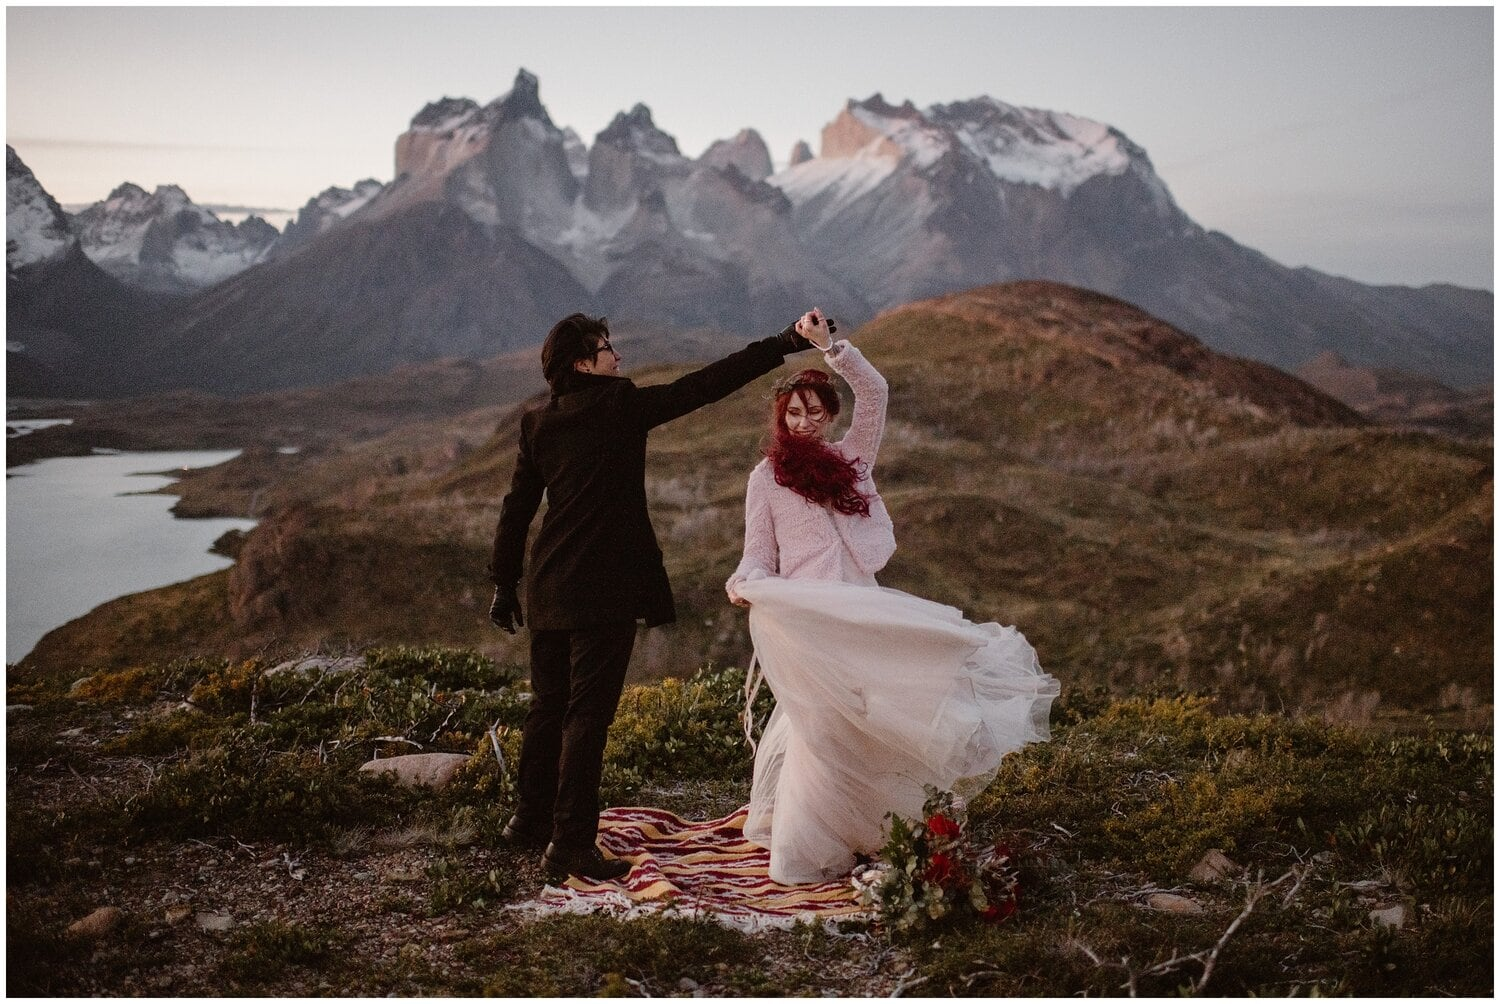 Couple dances on their wedding day in Patagonia.